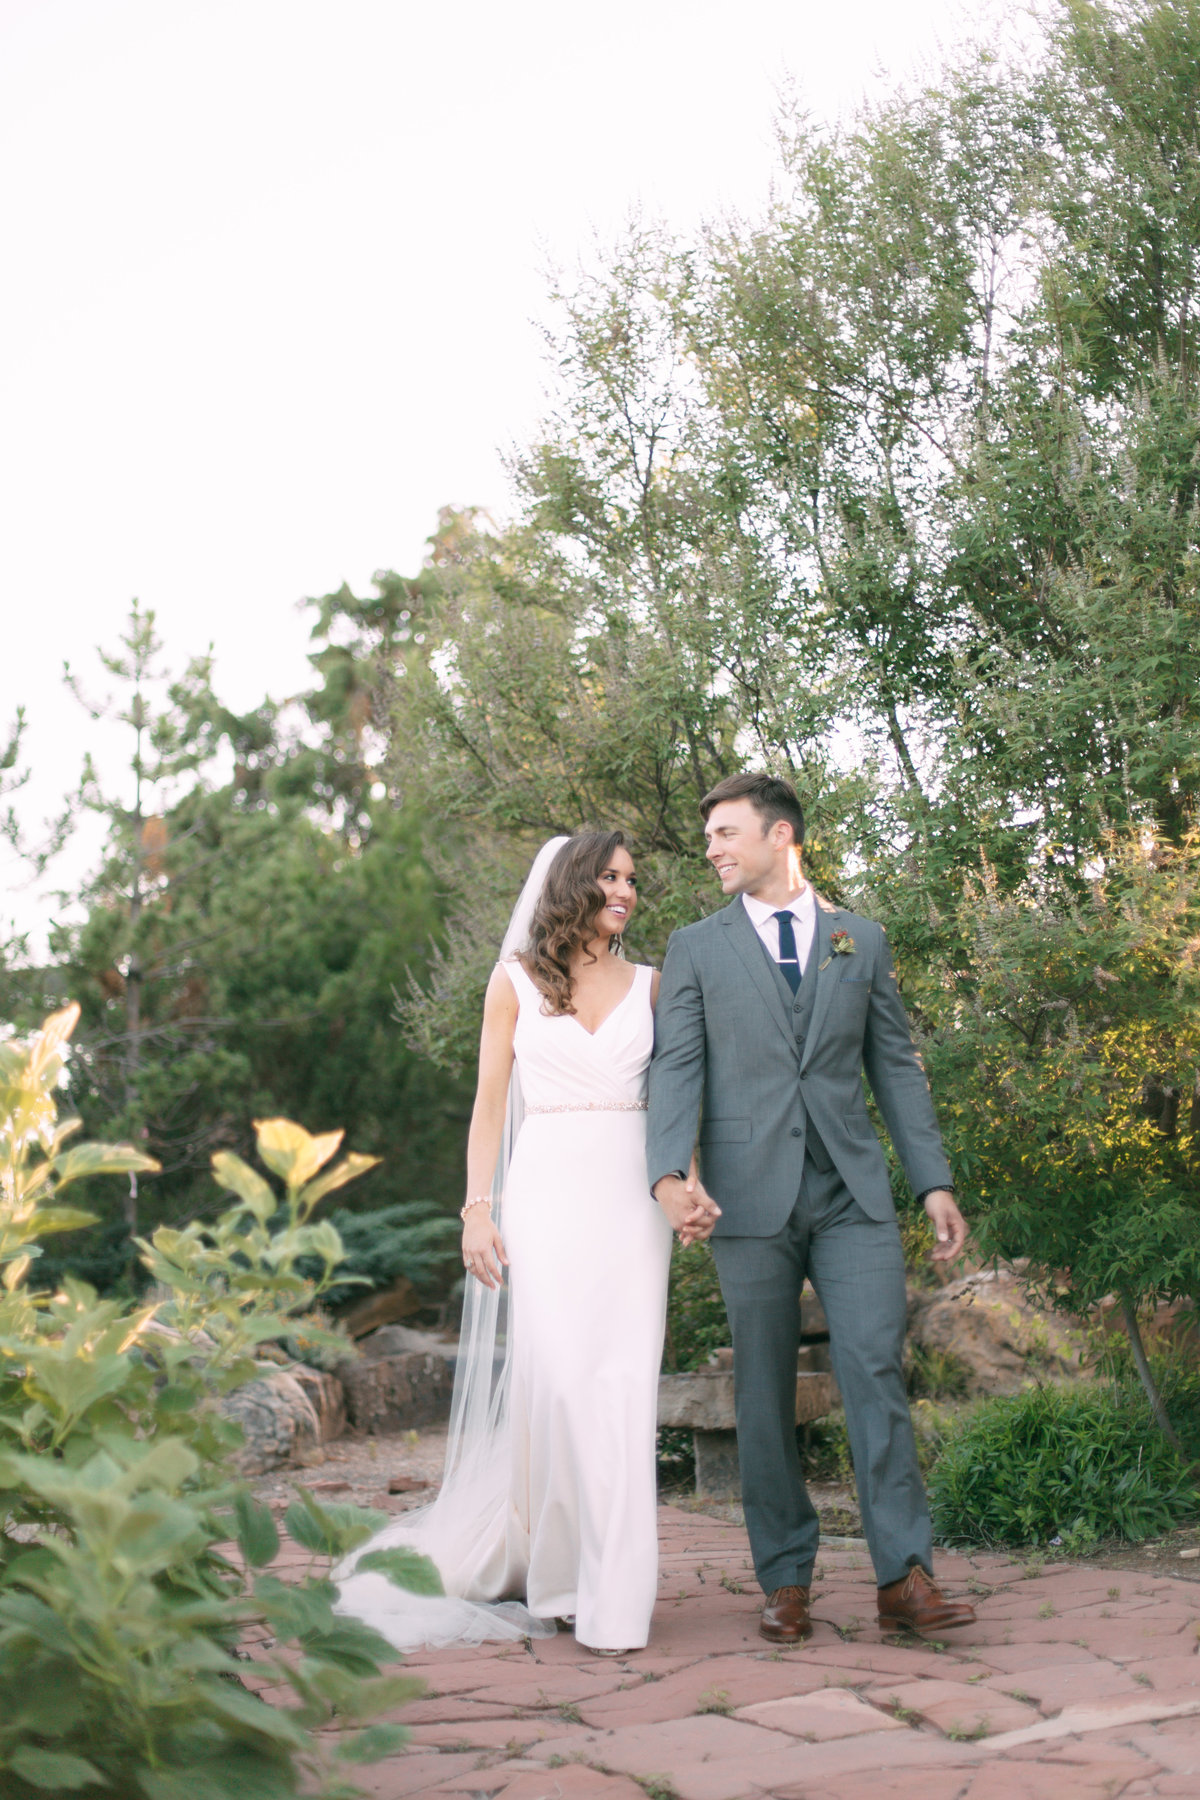 Coles-Garden-Wedding-Photographer